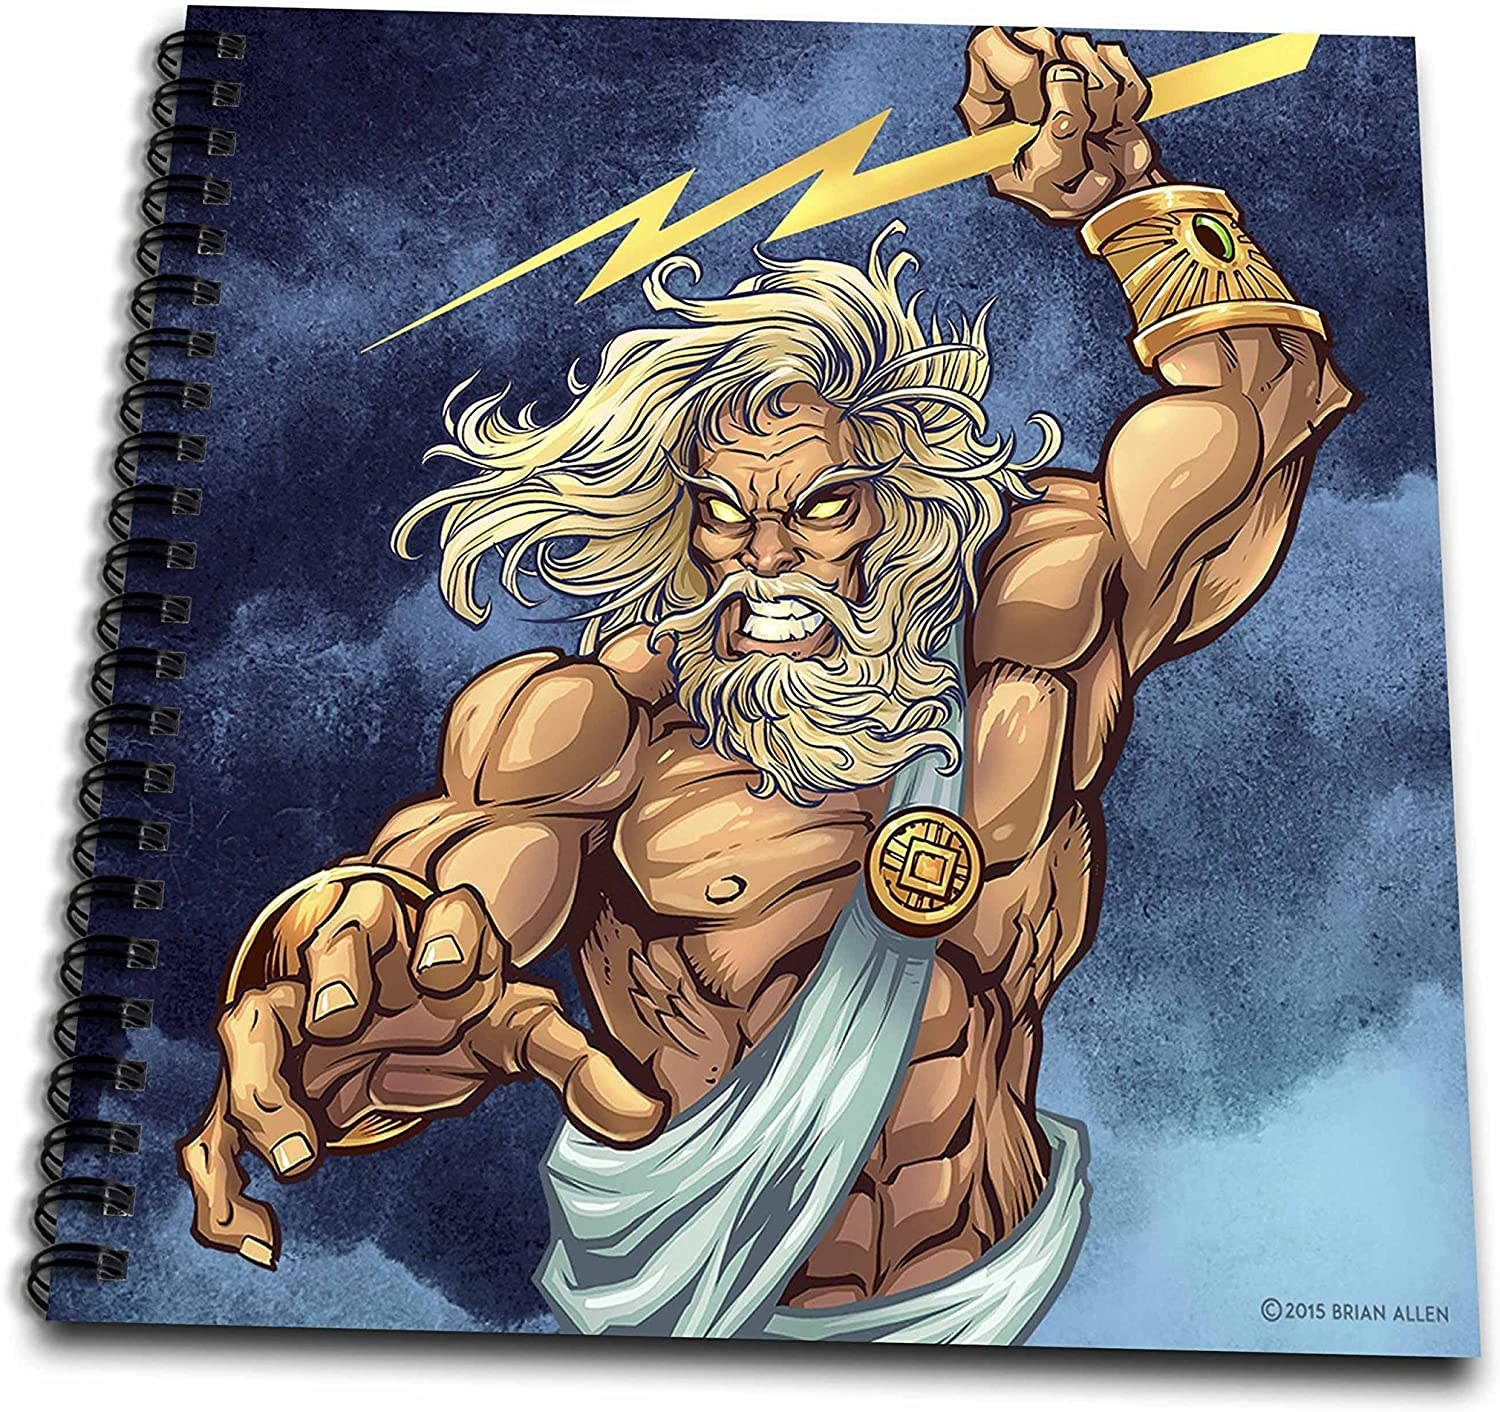 Amazon Com 3drose Zeus Throwing A Lightning Bolt From A Stormy Sky Drawing Book 8 X 8 Arts Crafts Sewing